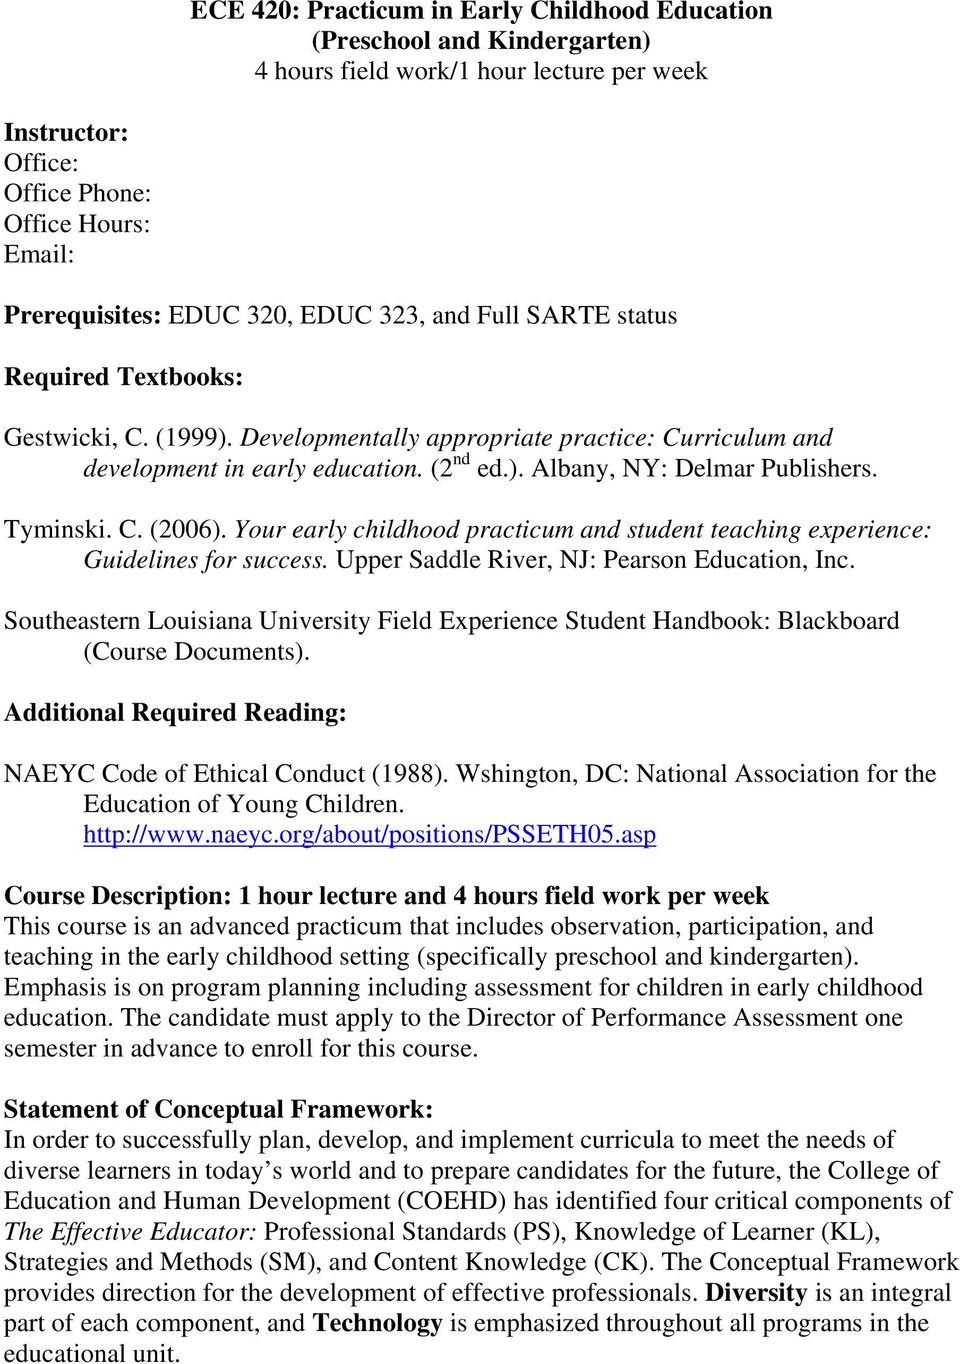 Ece 420 Practicum In Early Childhood Education Preschool And